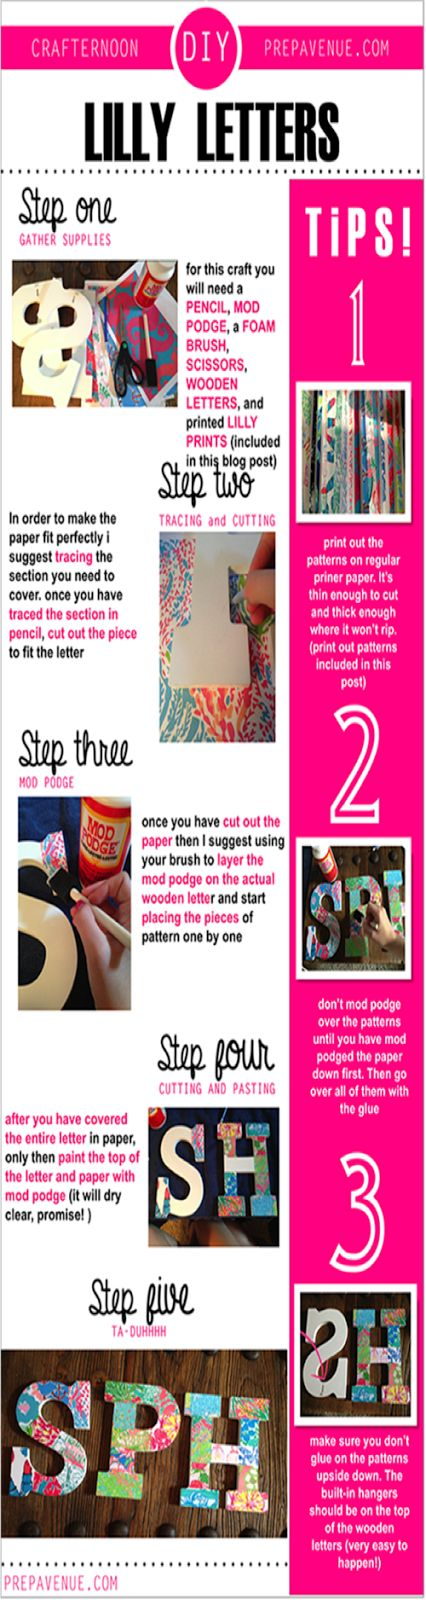 Step-by-Step Lilly Letters // PrepAvenue.com- #DIY #LillyPulitzer #Monograms